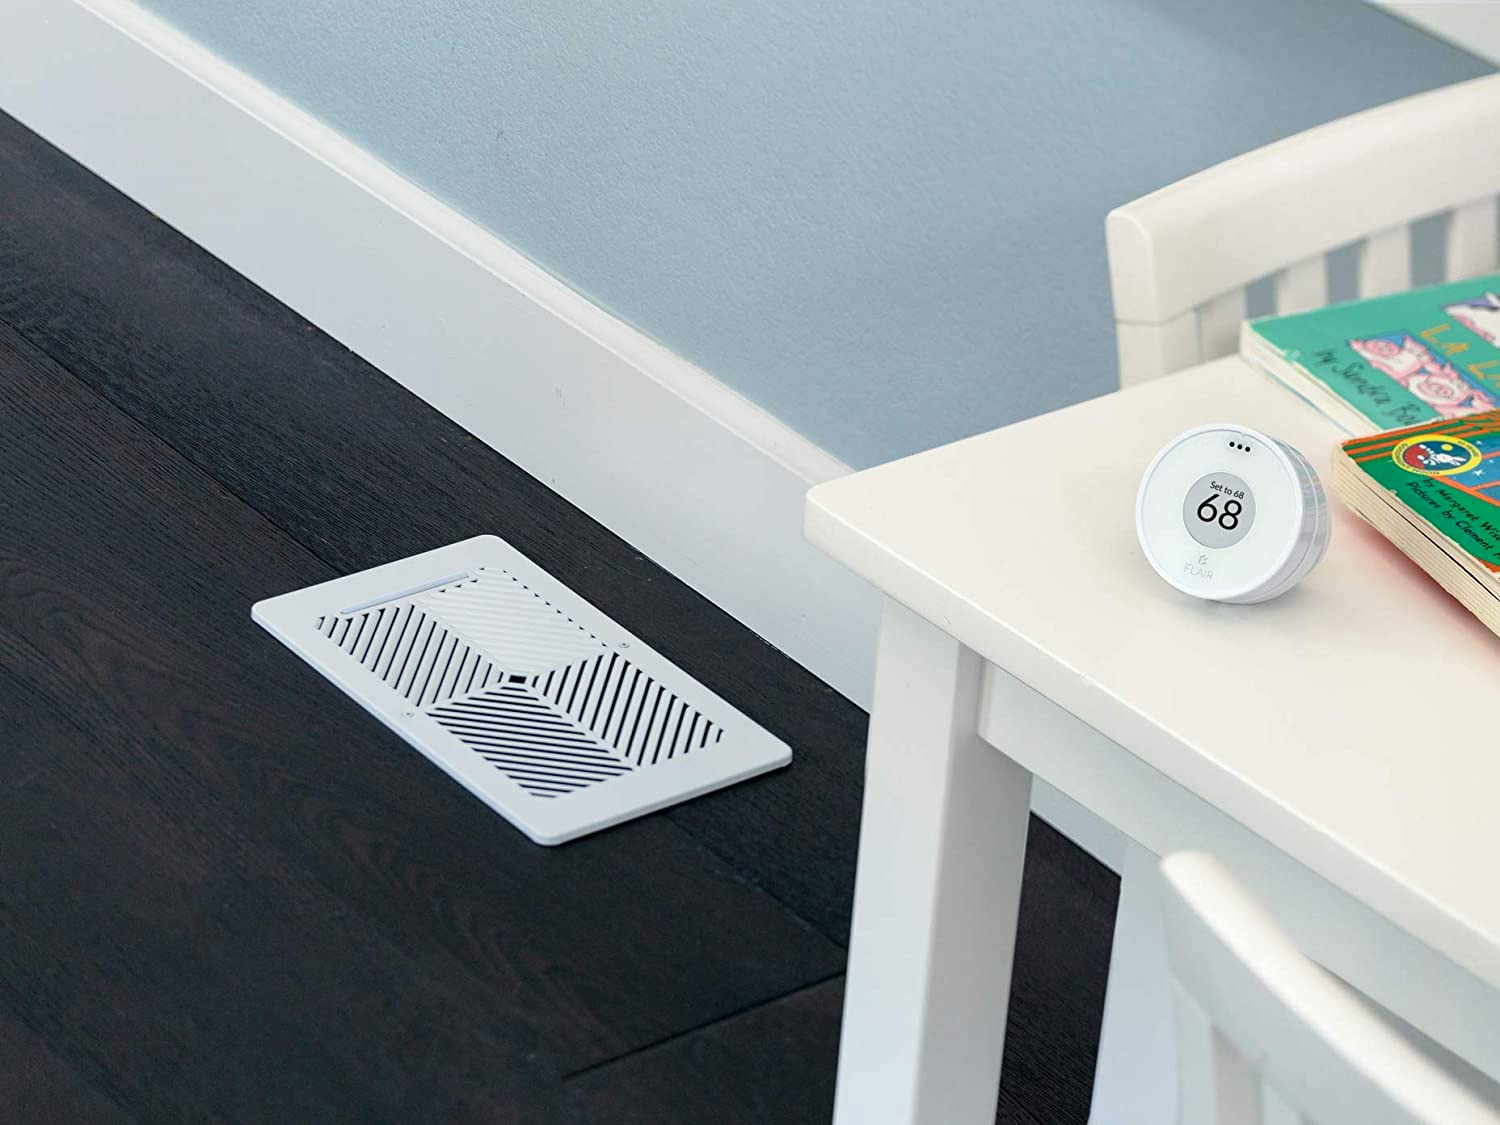 Flair Smart Vents Keep Your Home Just Right at werd.com